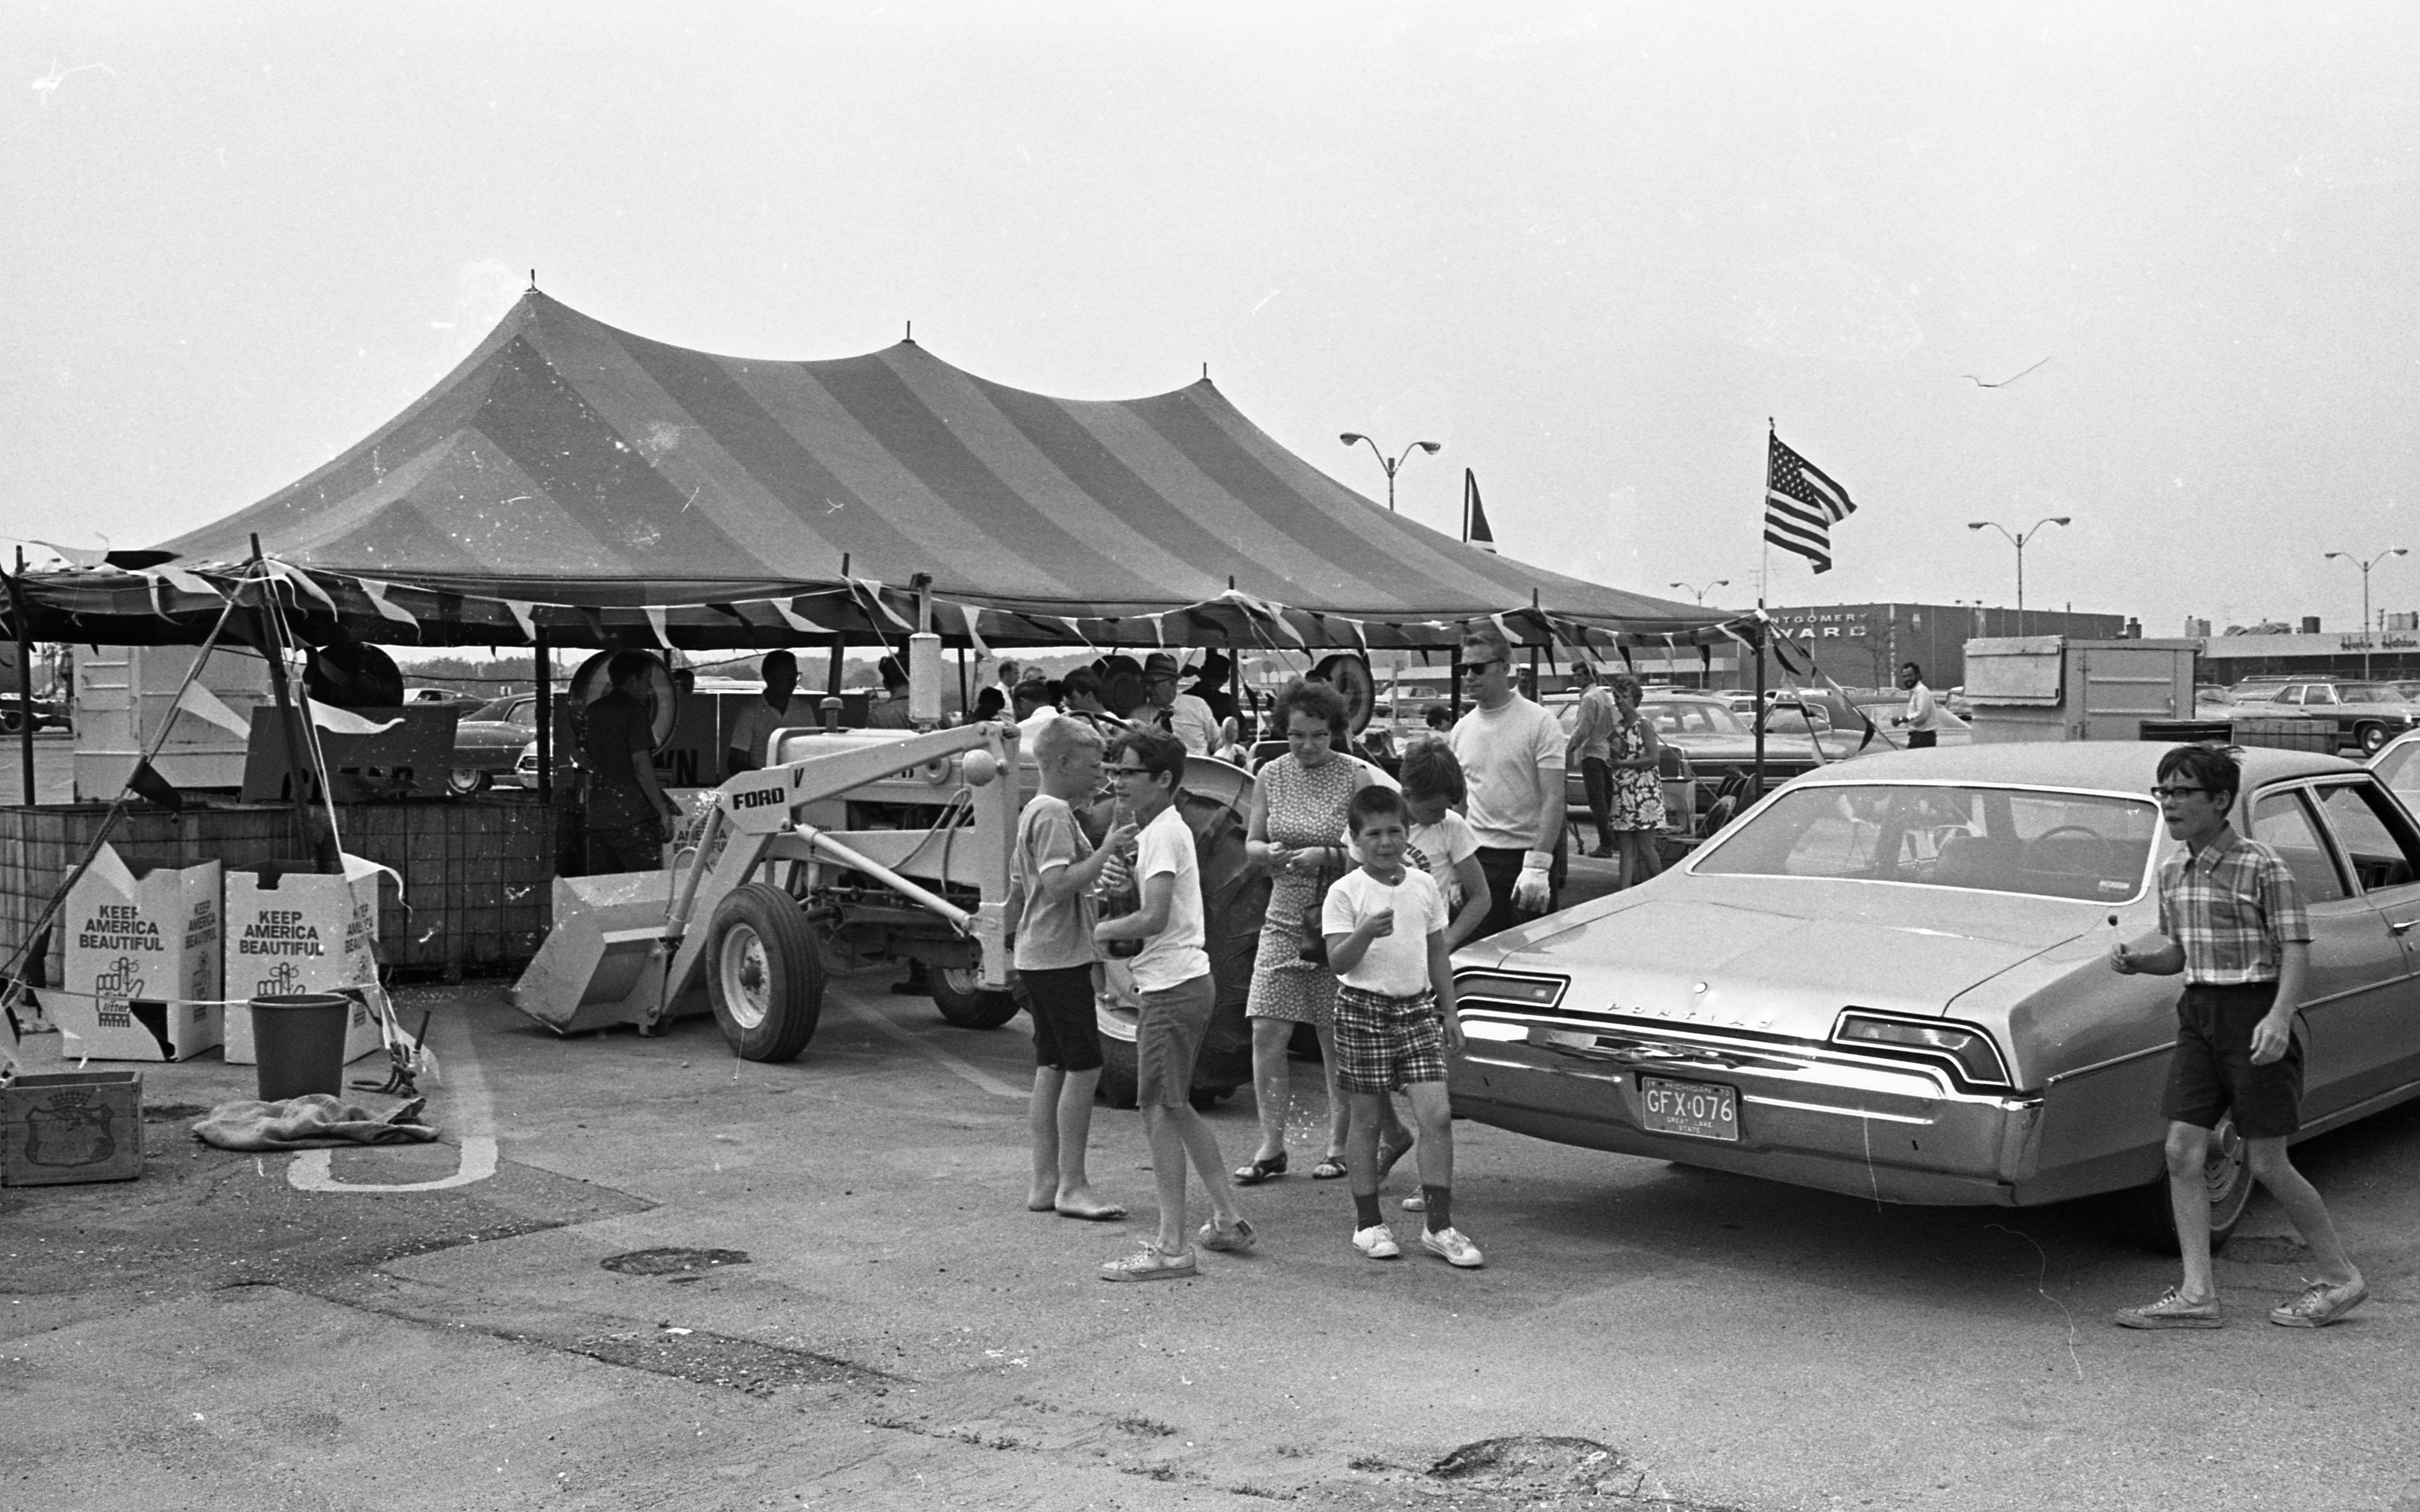 Crowd Shows Up at ENACT Glass Recycling Day at Arborland Shopping Center, June 1970 image